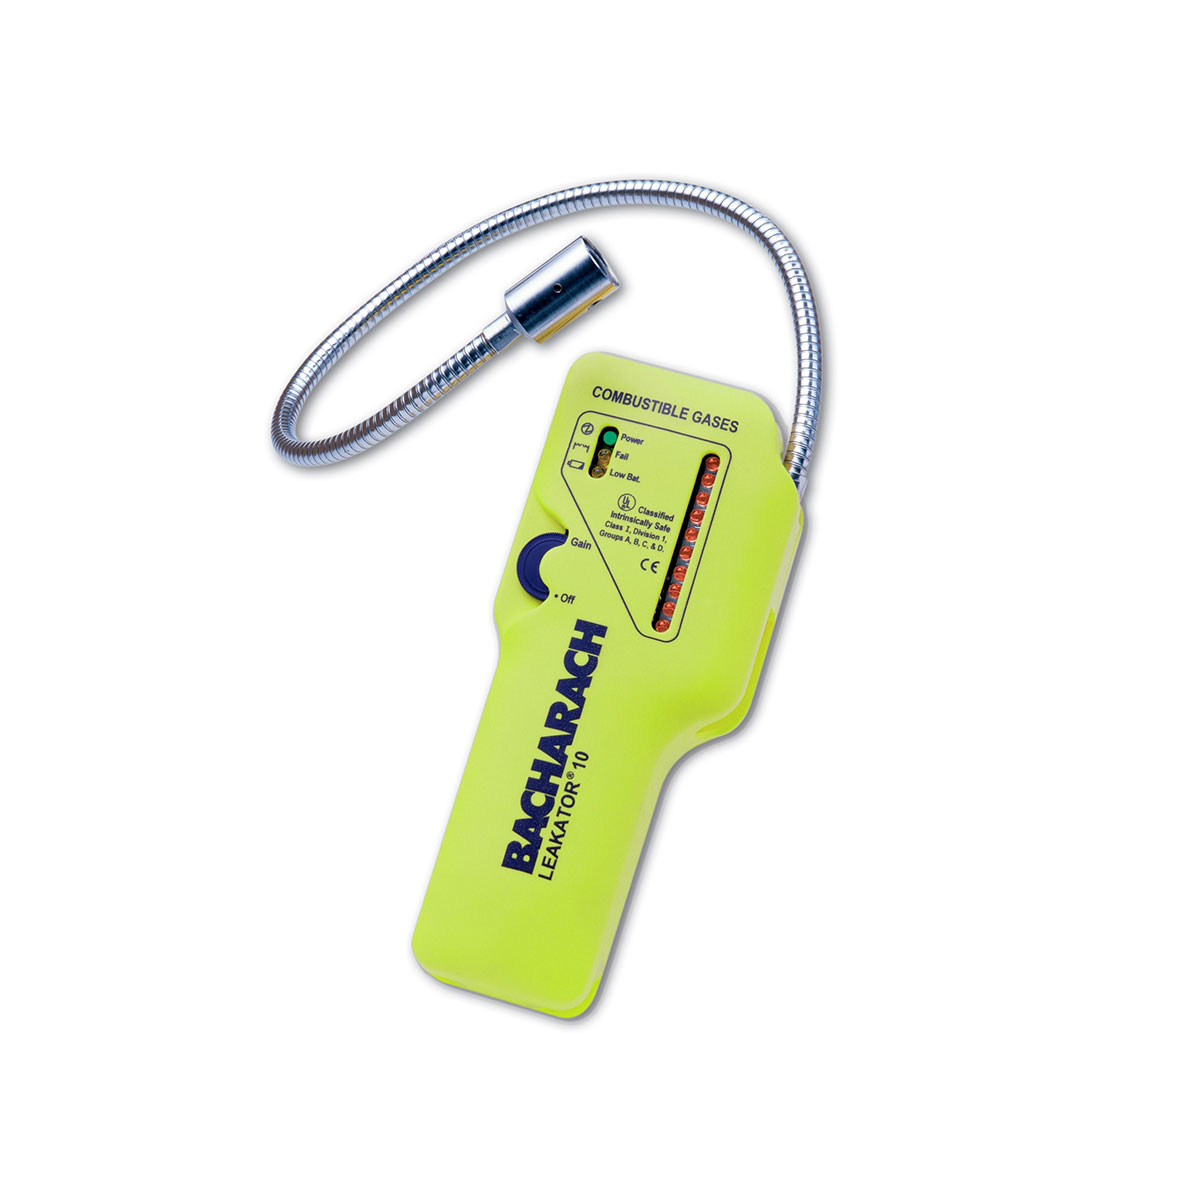 bacharach Leakator 10 Combustible Gas Leak Detector product image